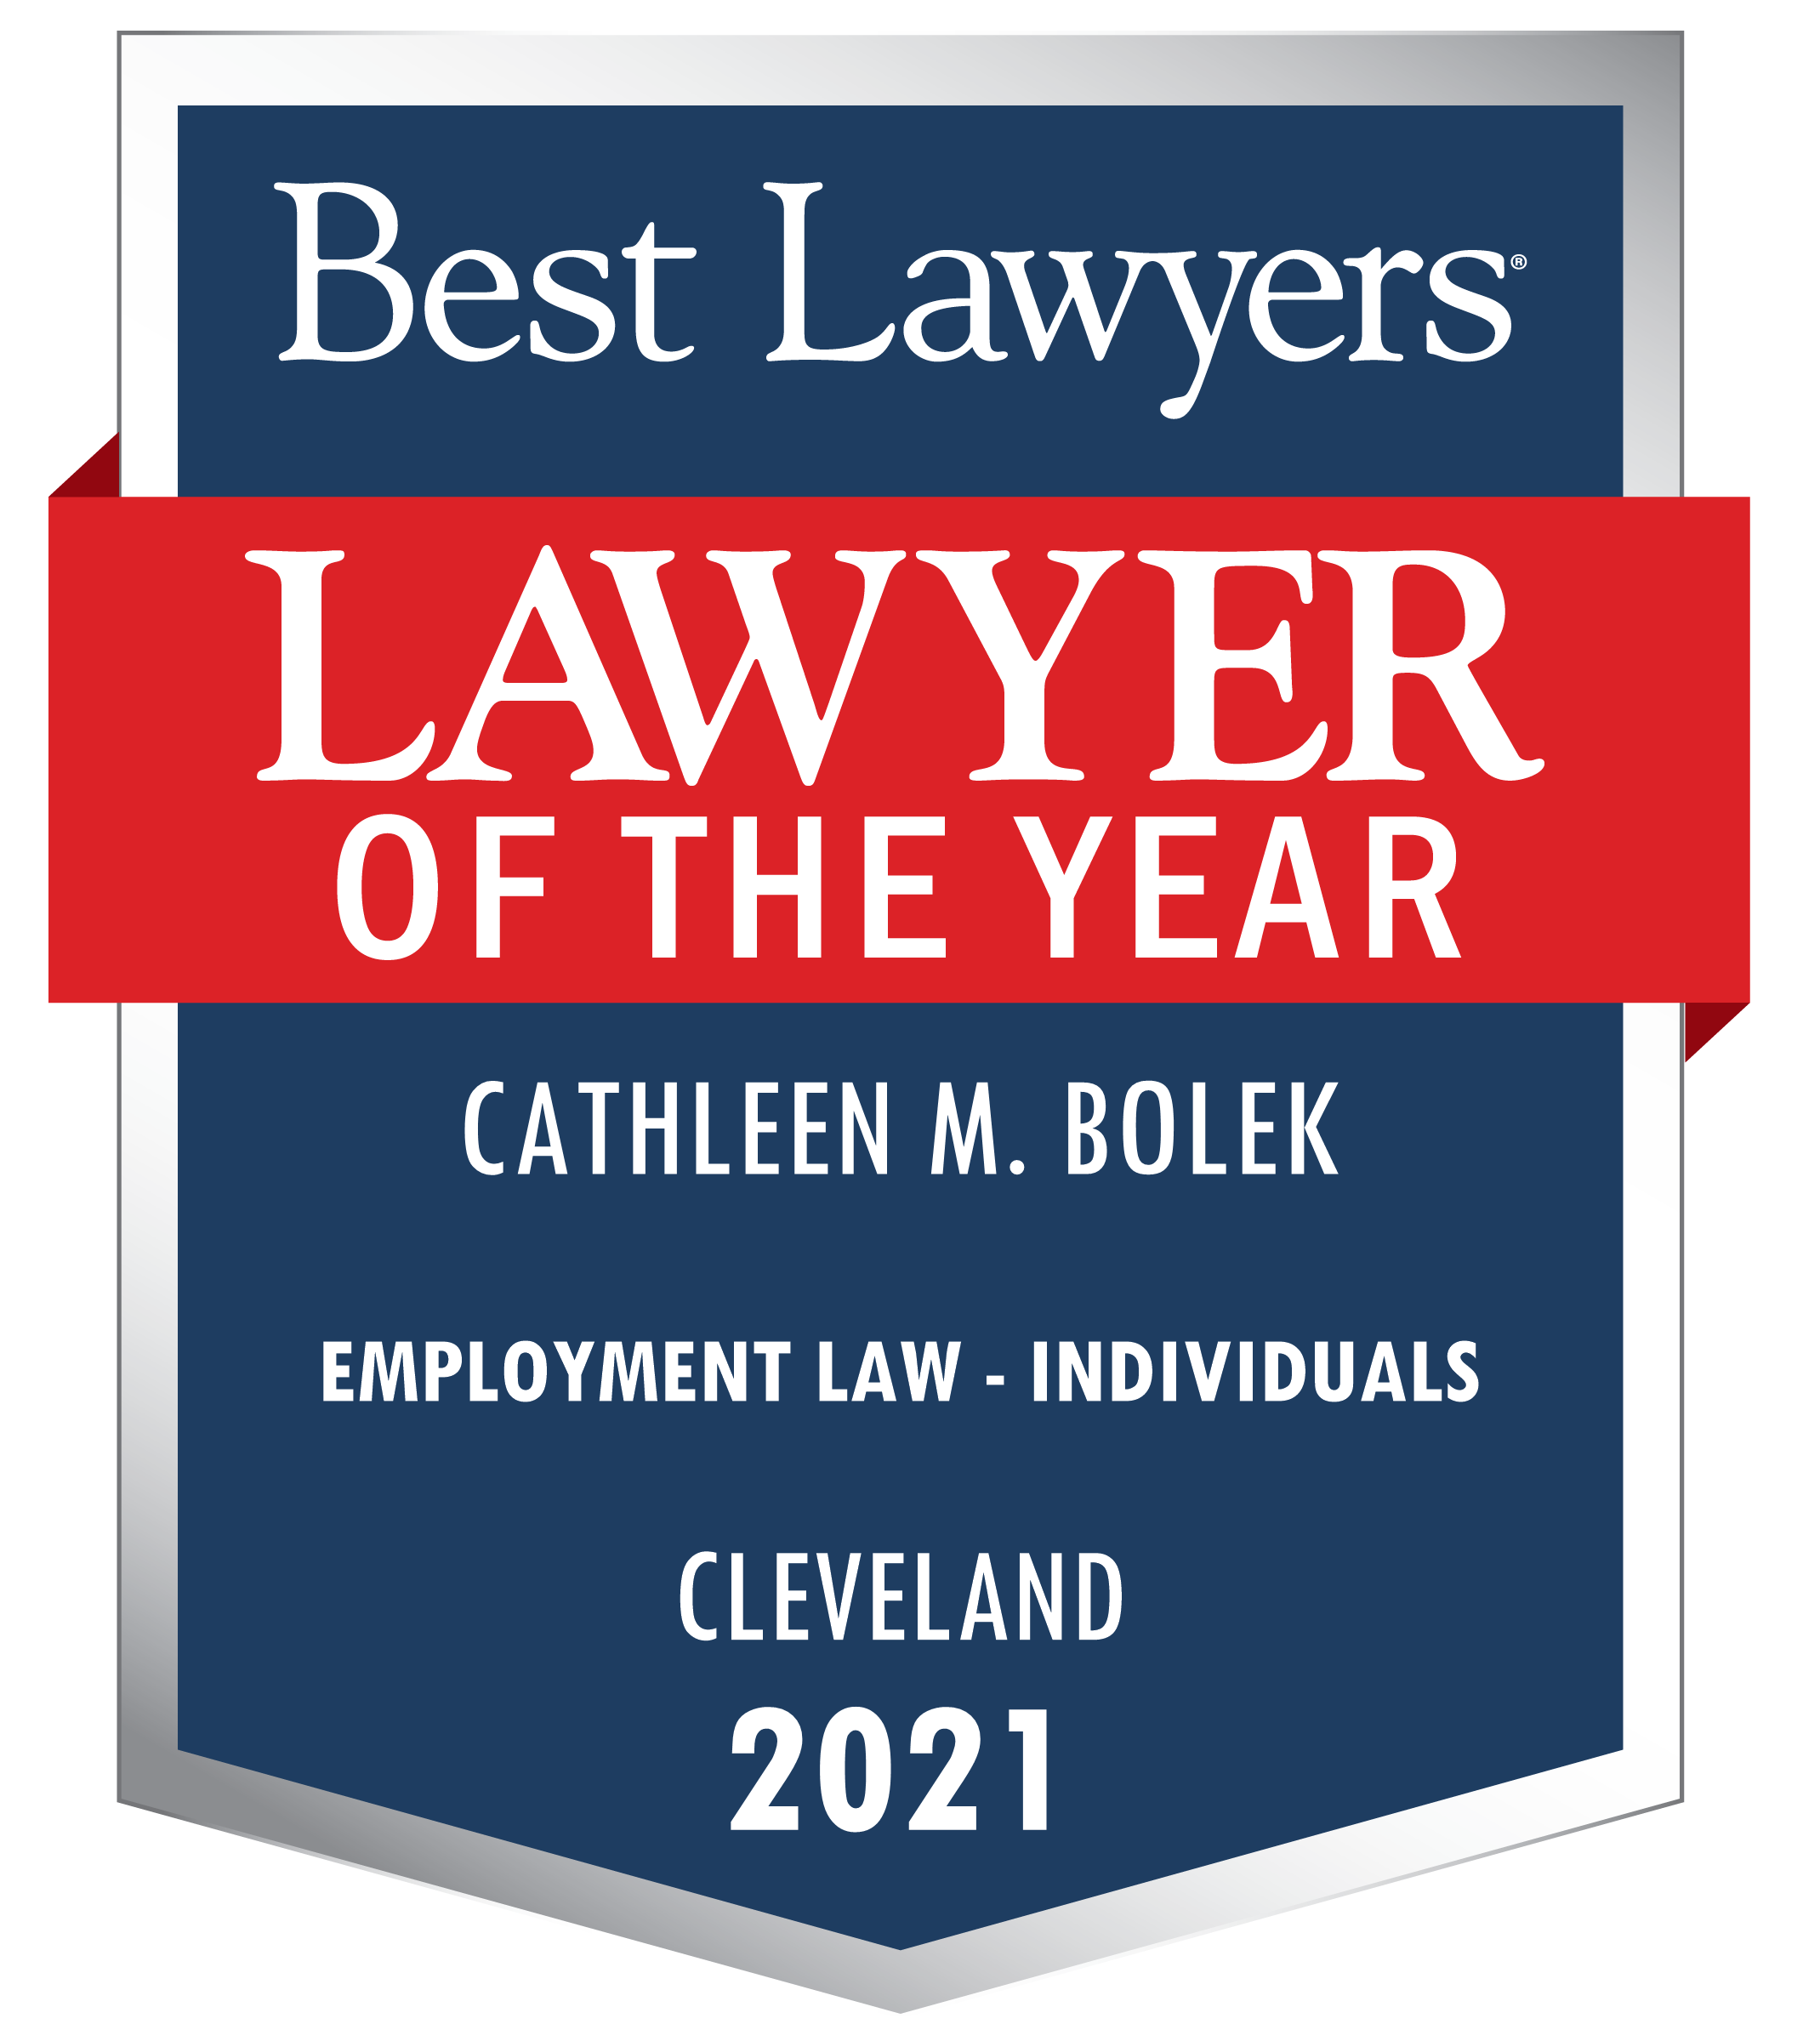 Best Lawyers Cathleen M. Bolek Lawyer of the Year 2021